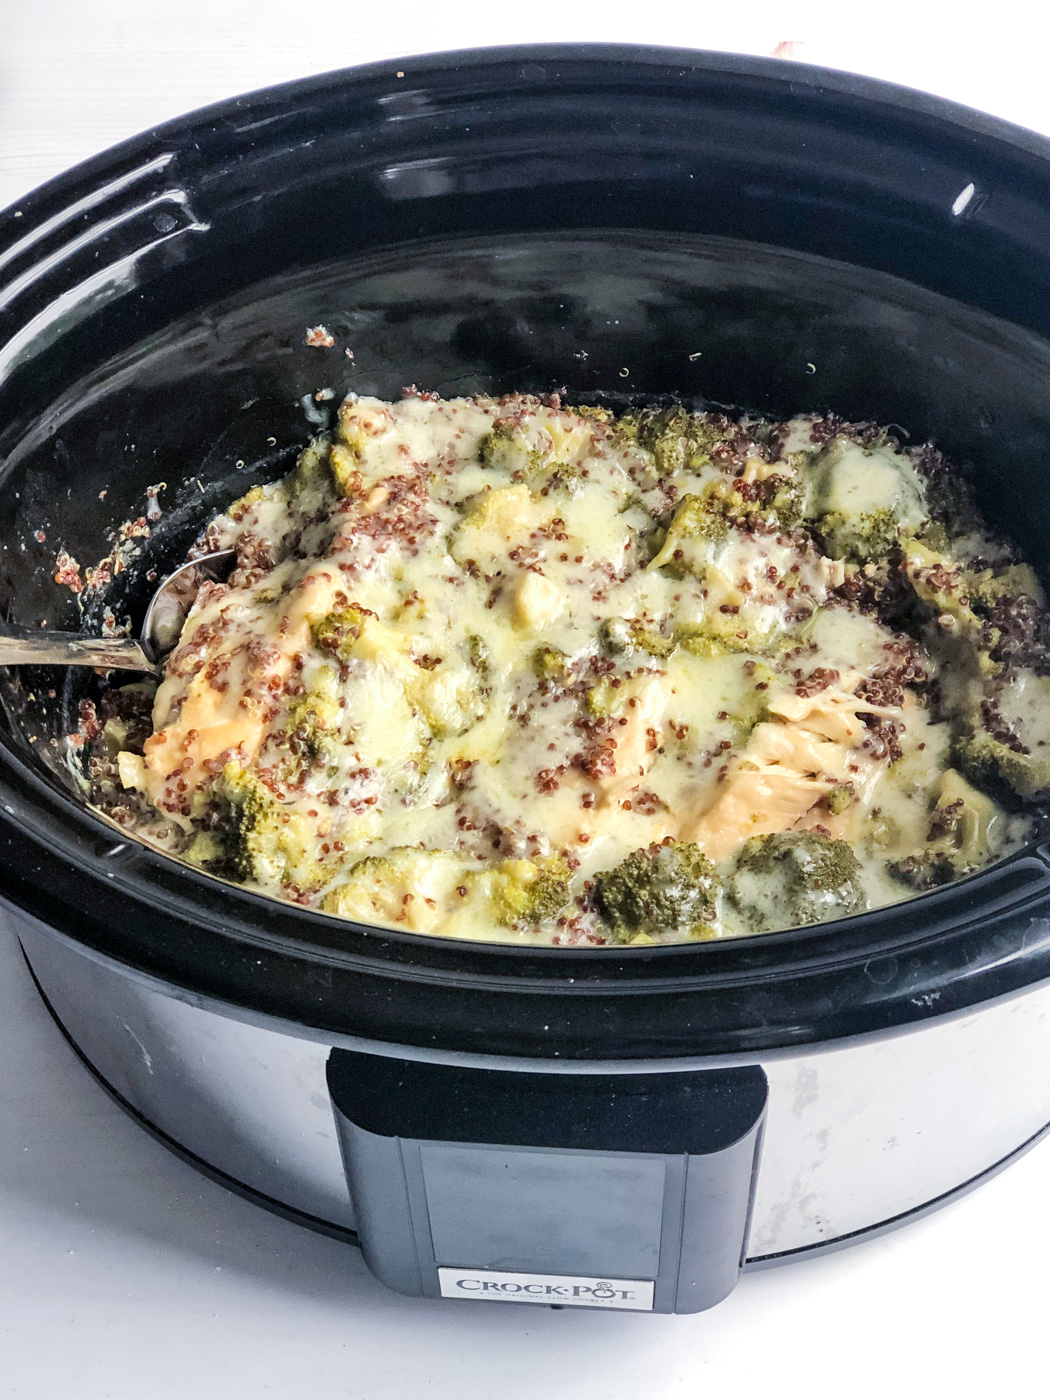 Healthy Slow Cooker Creamy Chicken Casserole Recipe